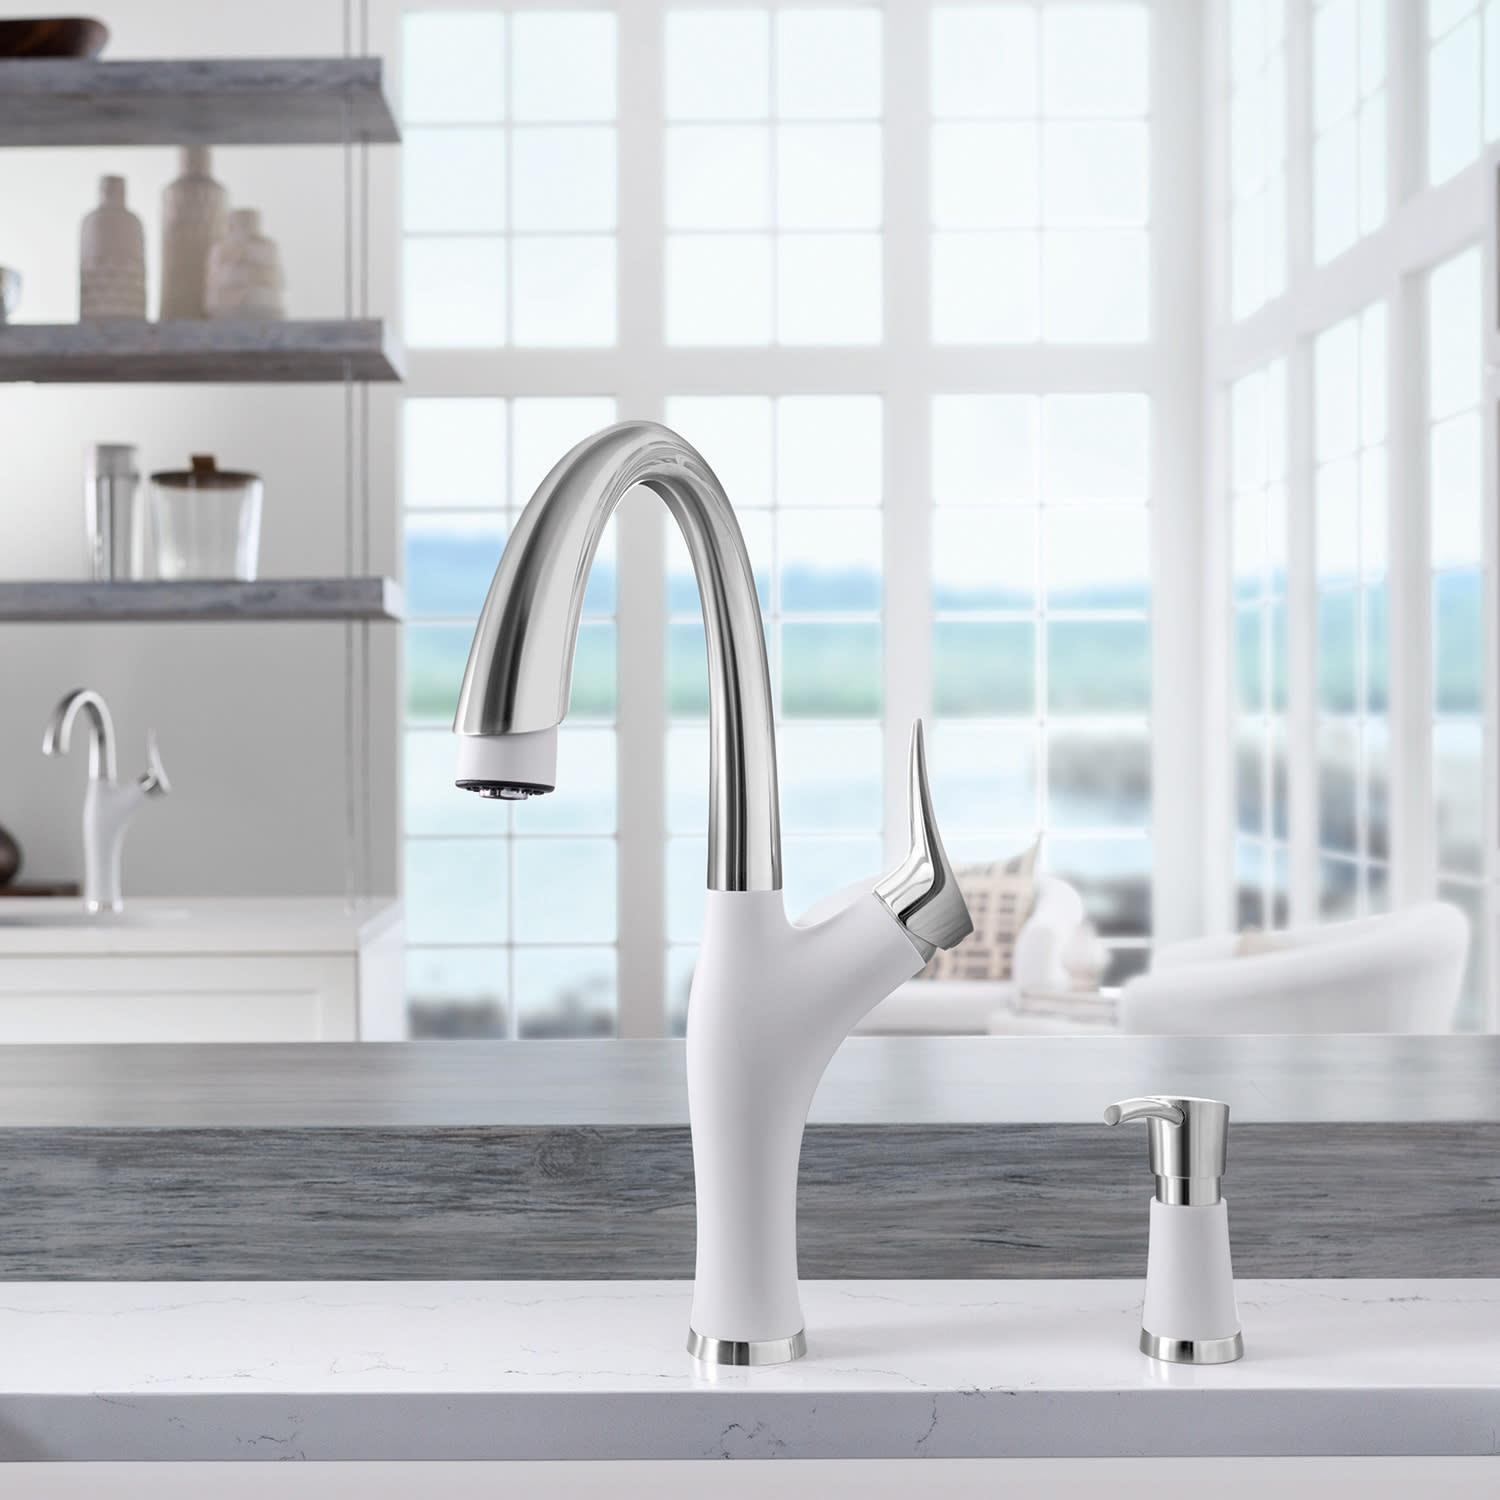 pegasus design of alta kitchen elegant installation blog faucet house delta unique harmony blanco